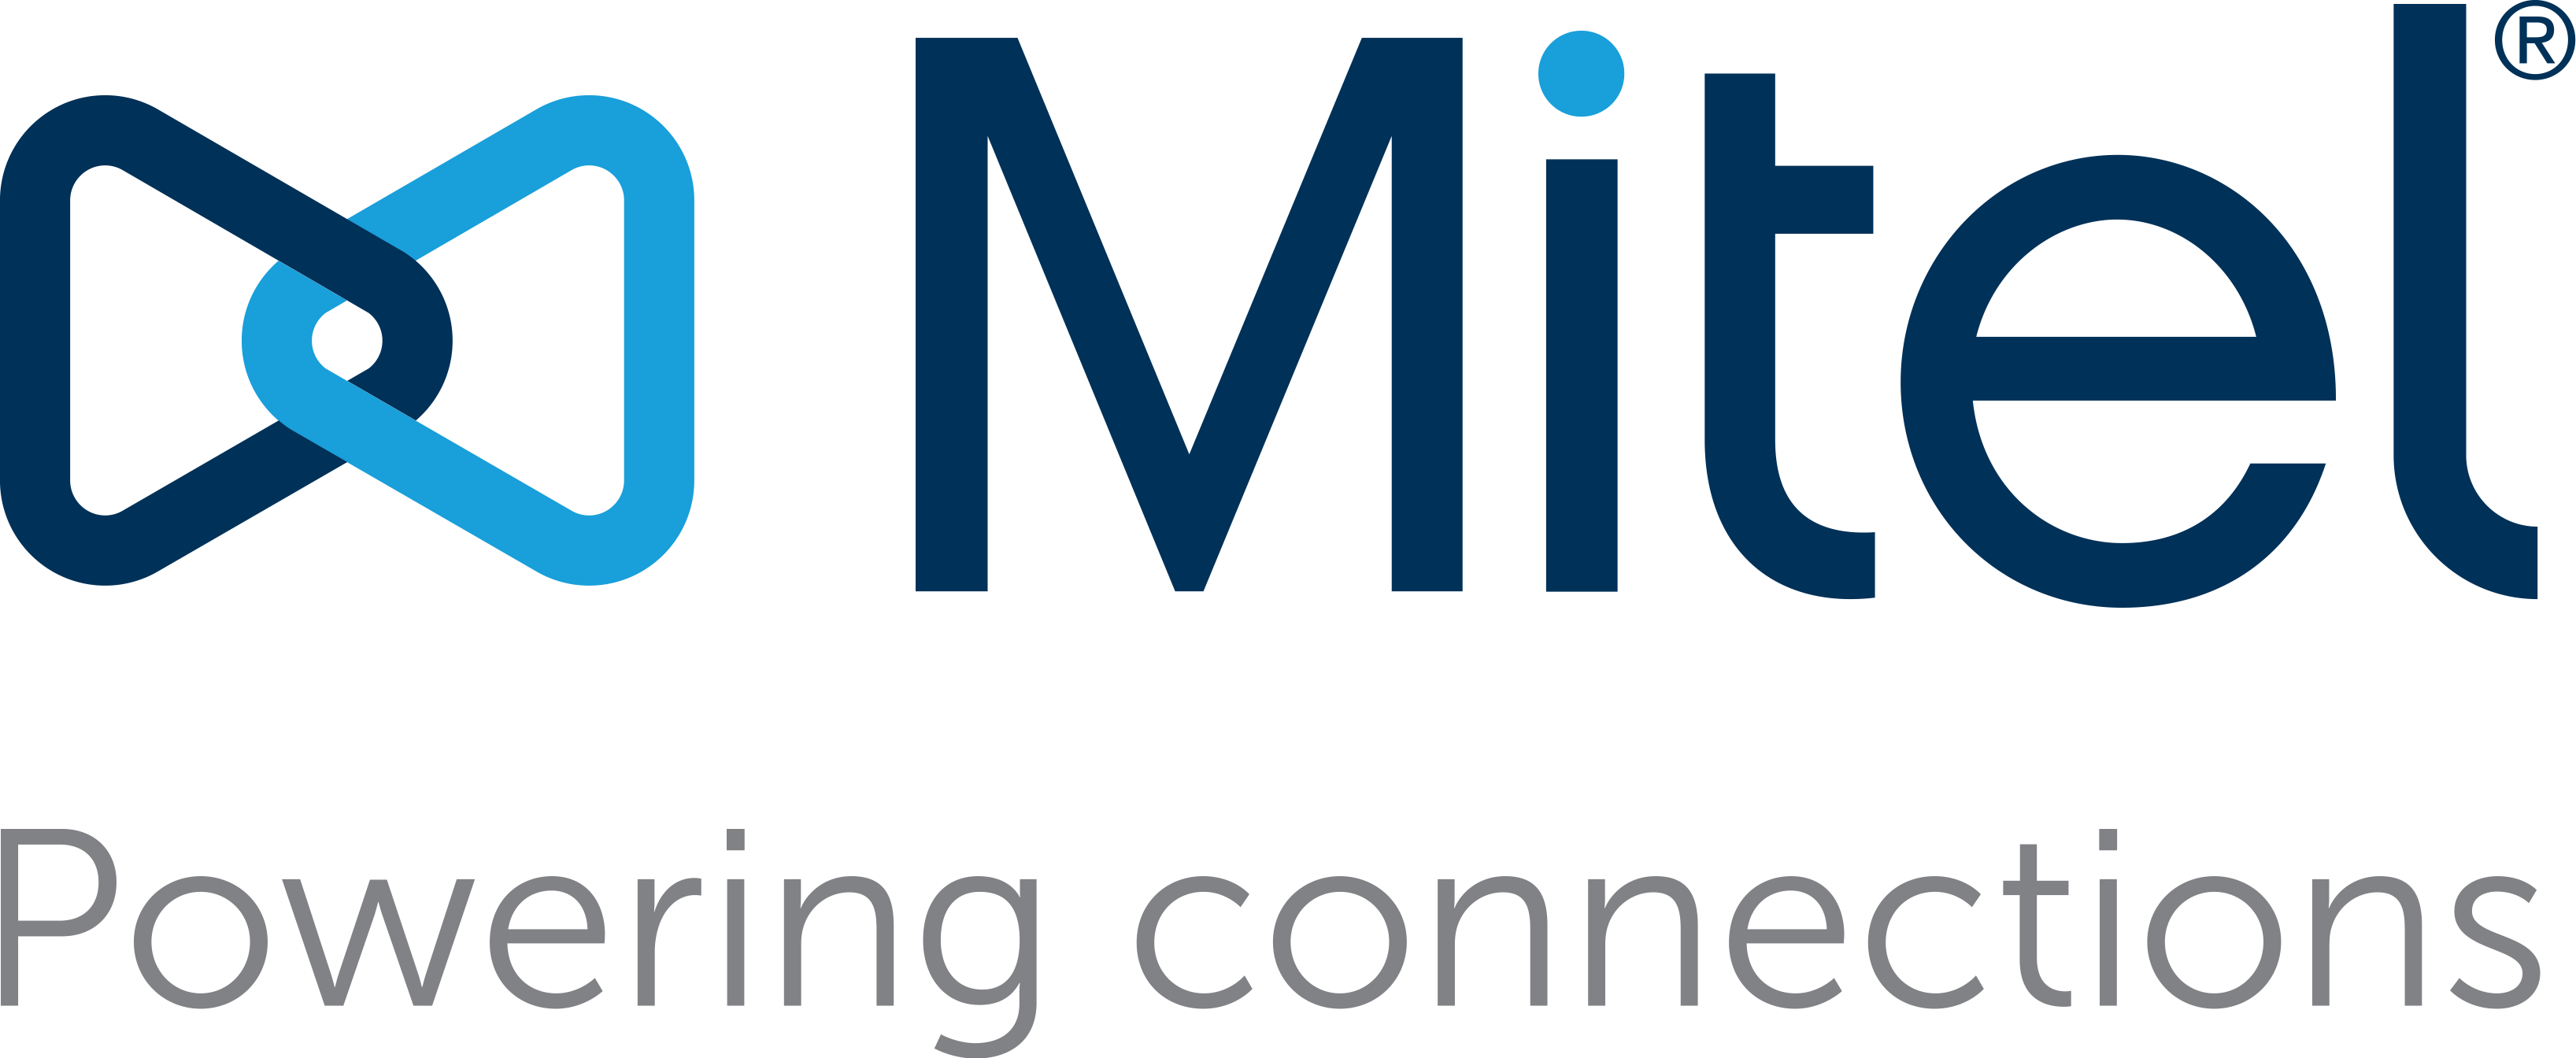 MitelLogo-Tagline-fullcolor-withR.png